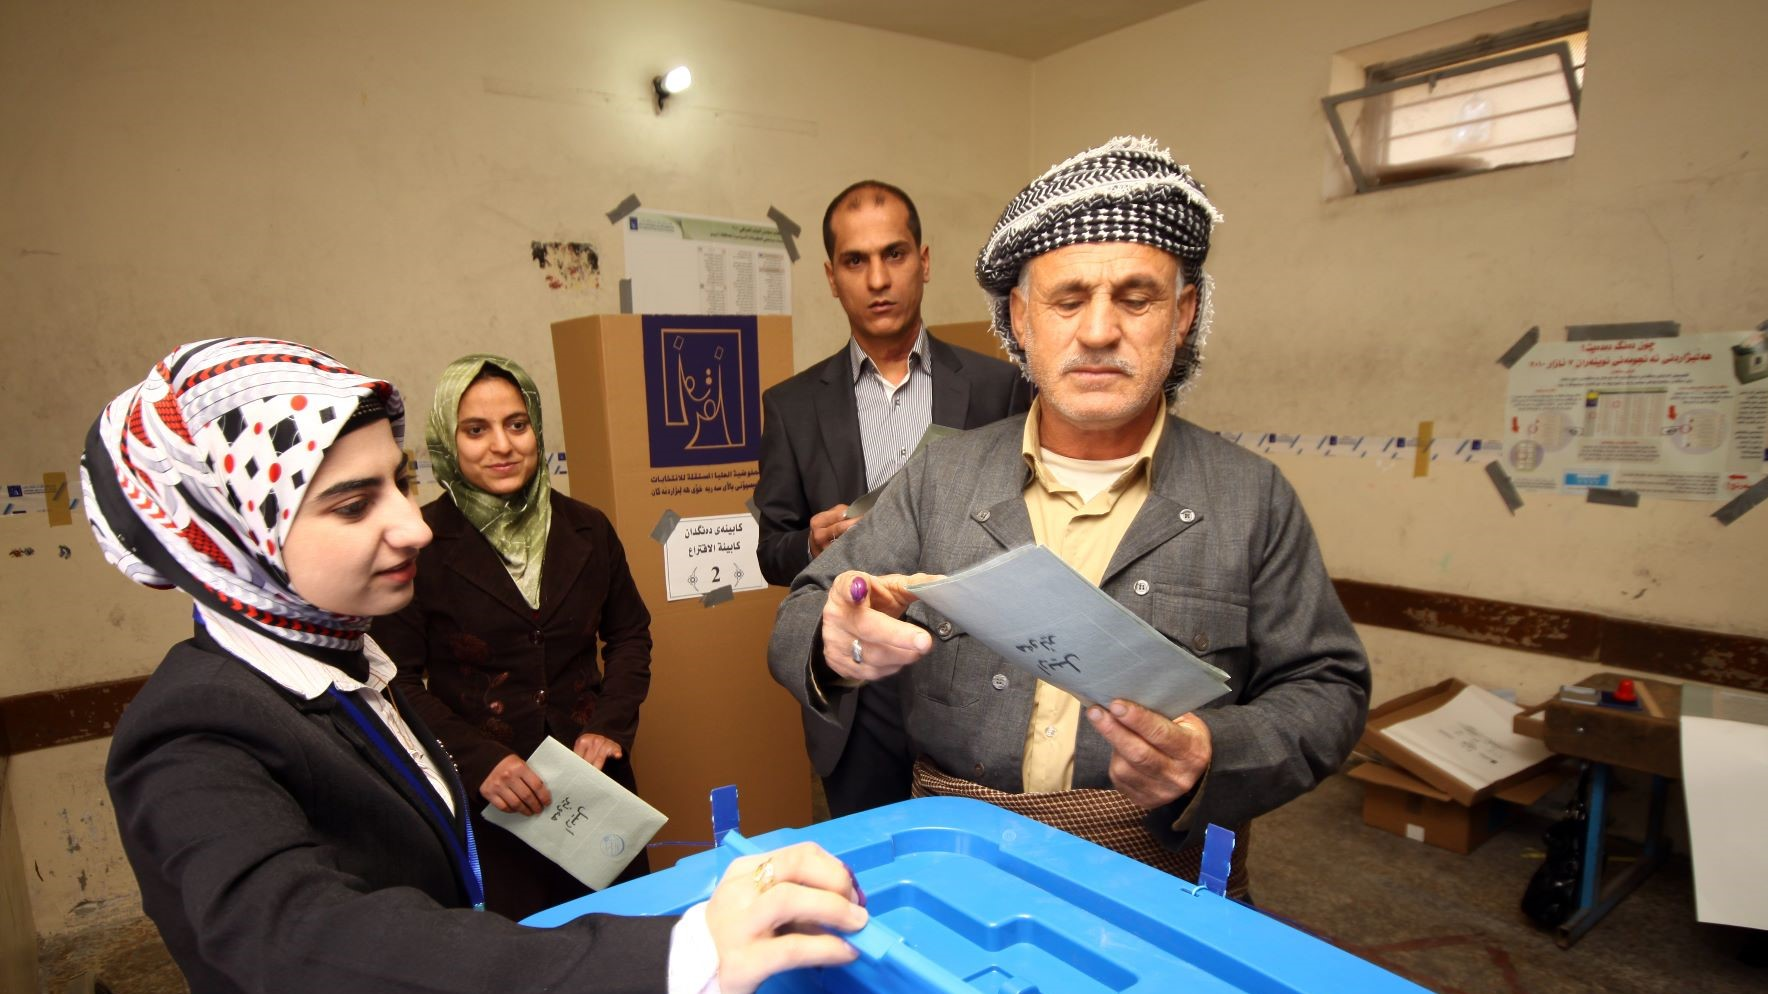 Iraq: Low election turnout, protests may reemerge, Iran and Saudi may not care